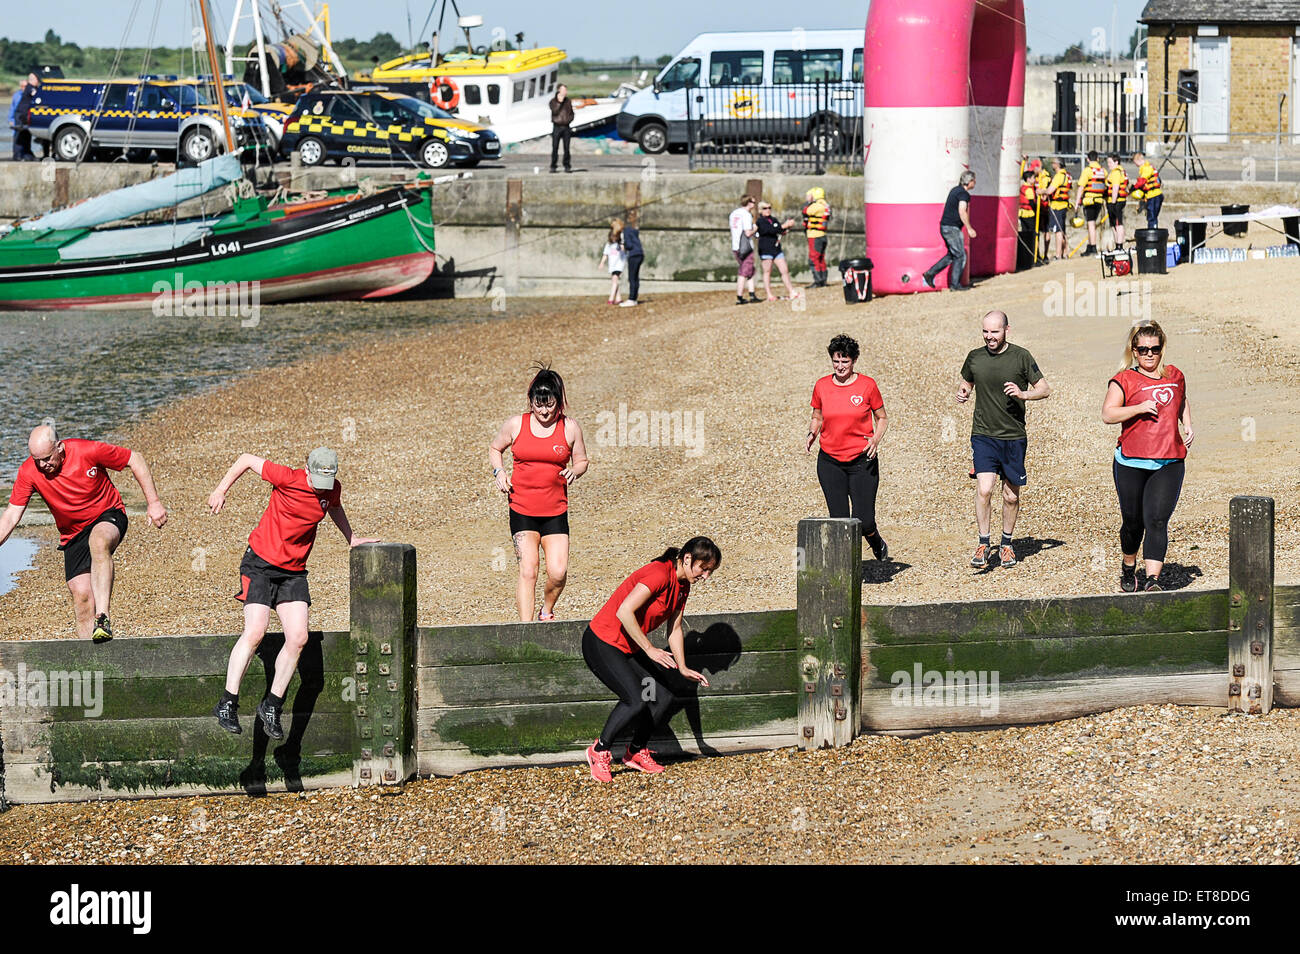 A fitness boot camp on the beach at Leigh on Sea in Essex. - Stock Image